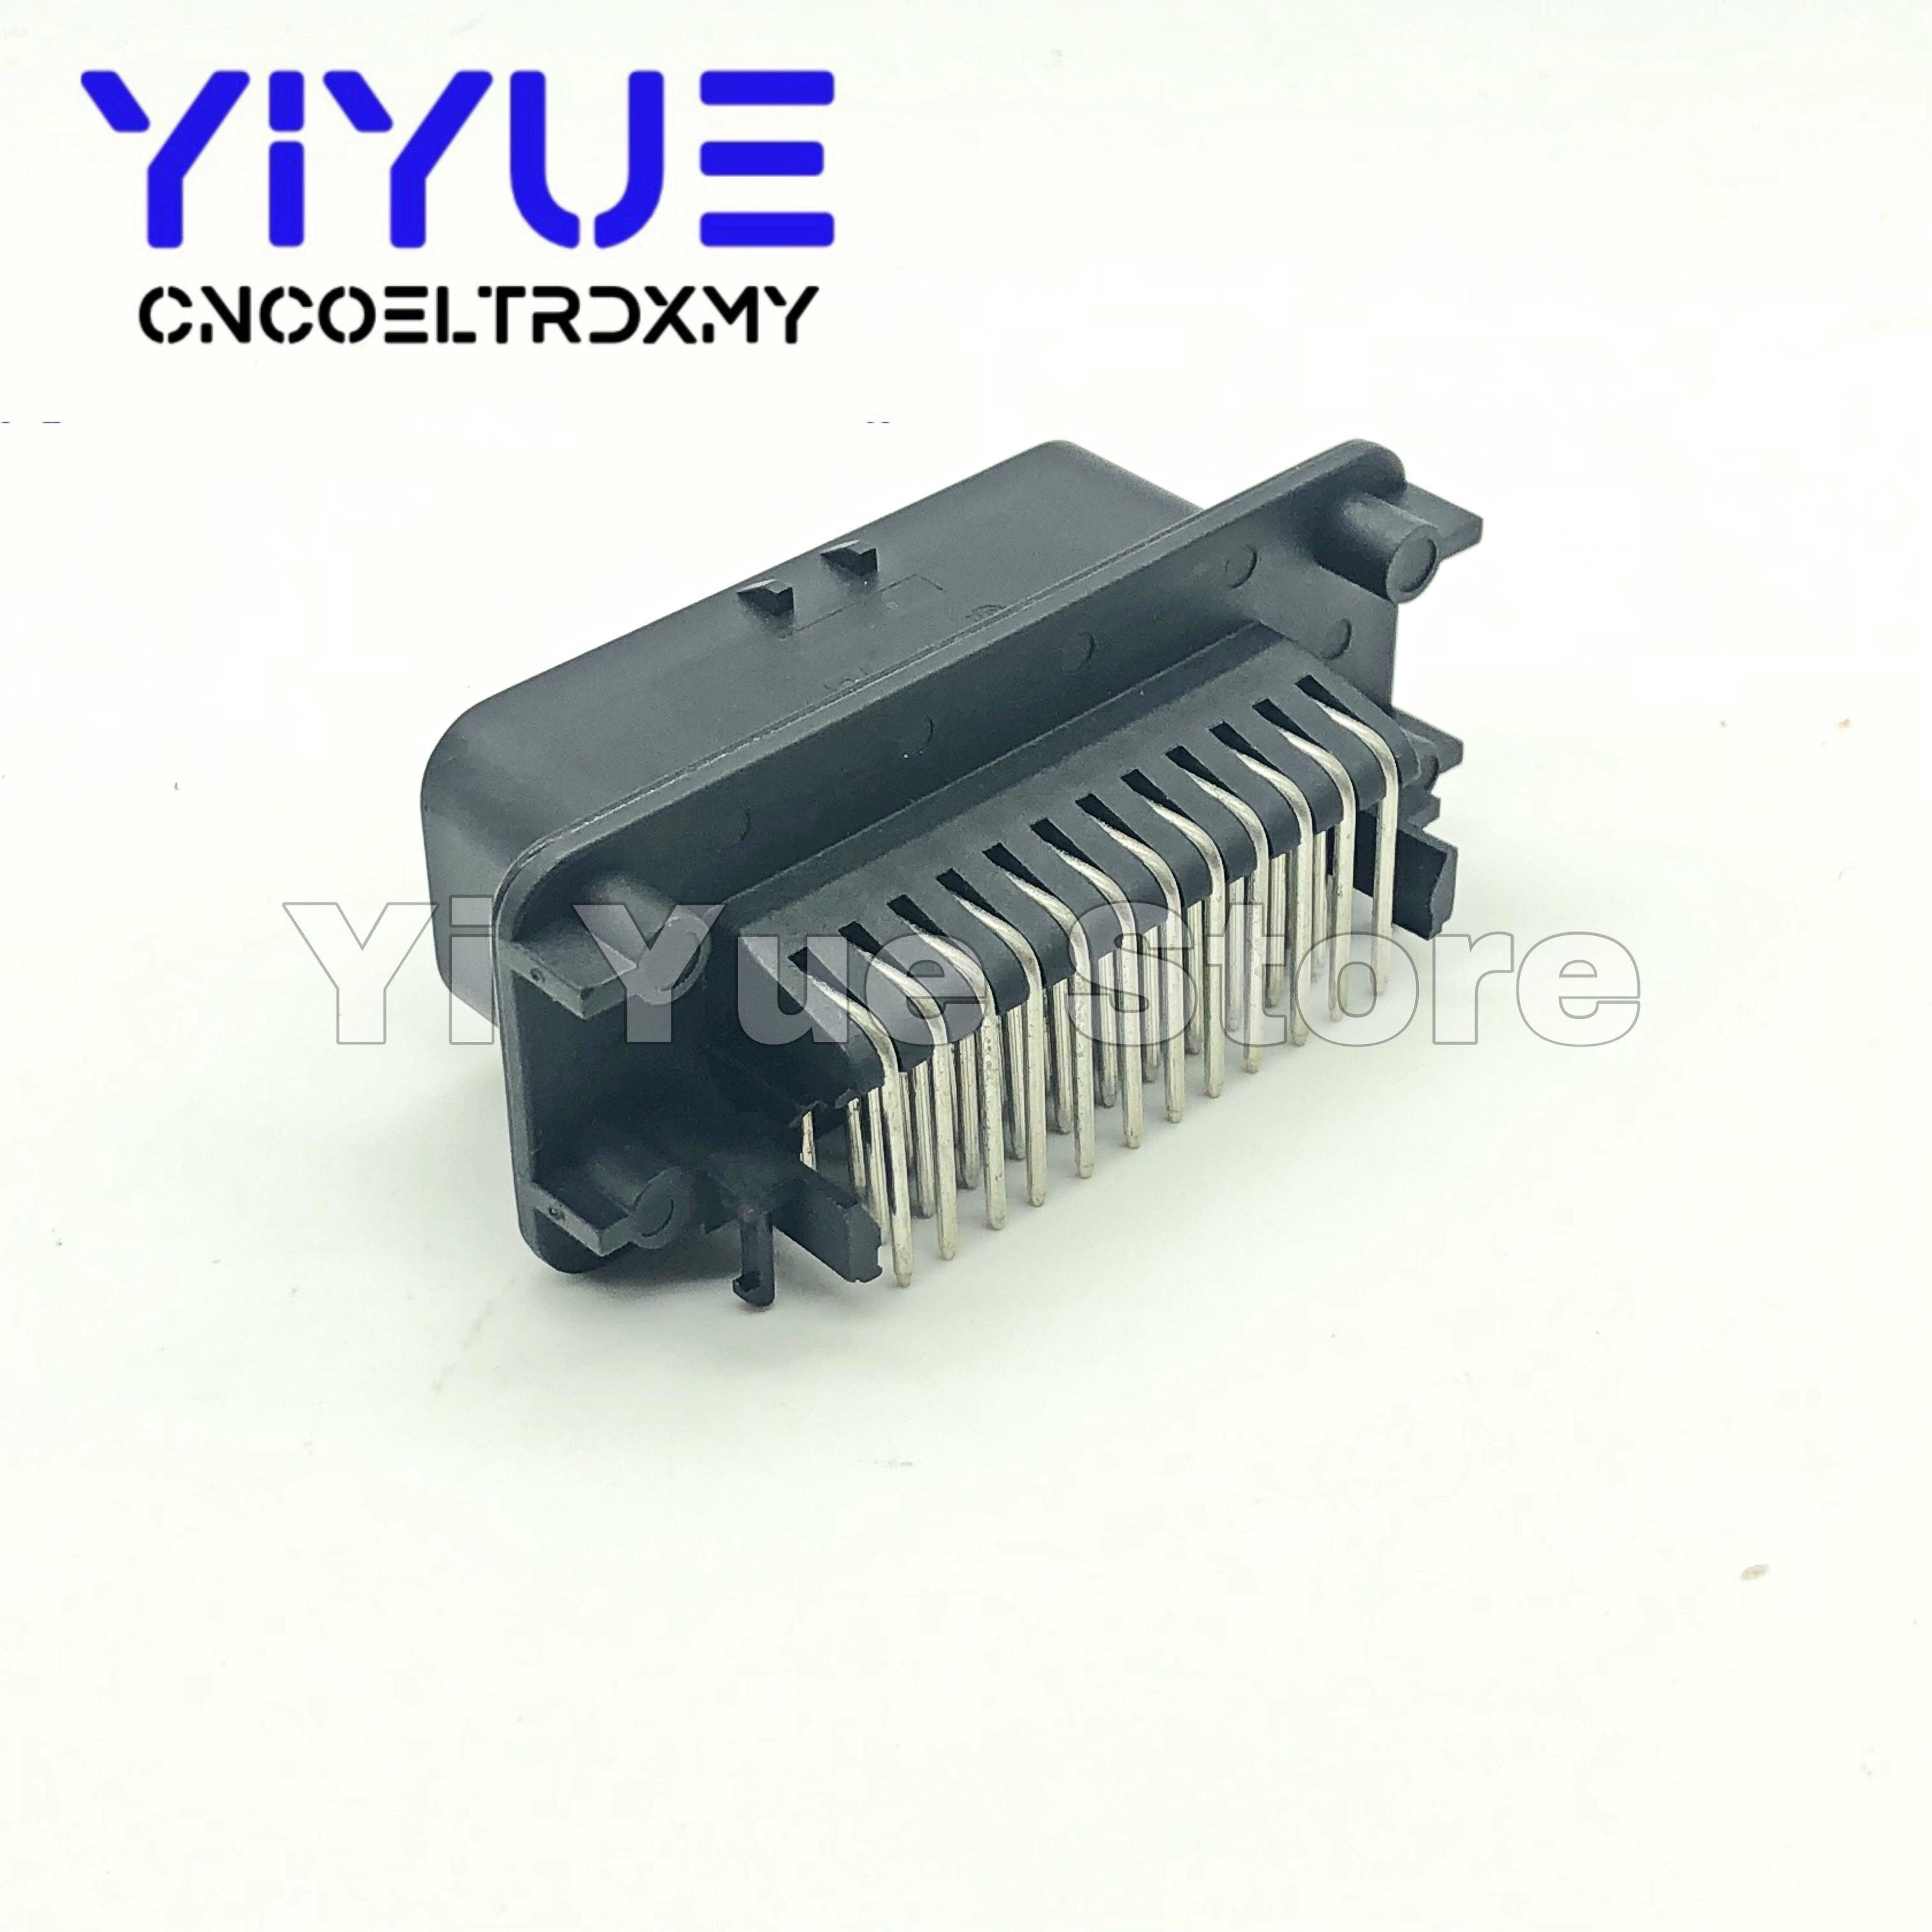 1 set 35pin Tyco AMP TE Male <font><b>PCB</b></font> ECU Auto Connector Plug 90 degree right-angle pinheader 776087-1 Mating part <font><b>of</b></font> 770680-1 image